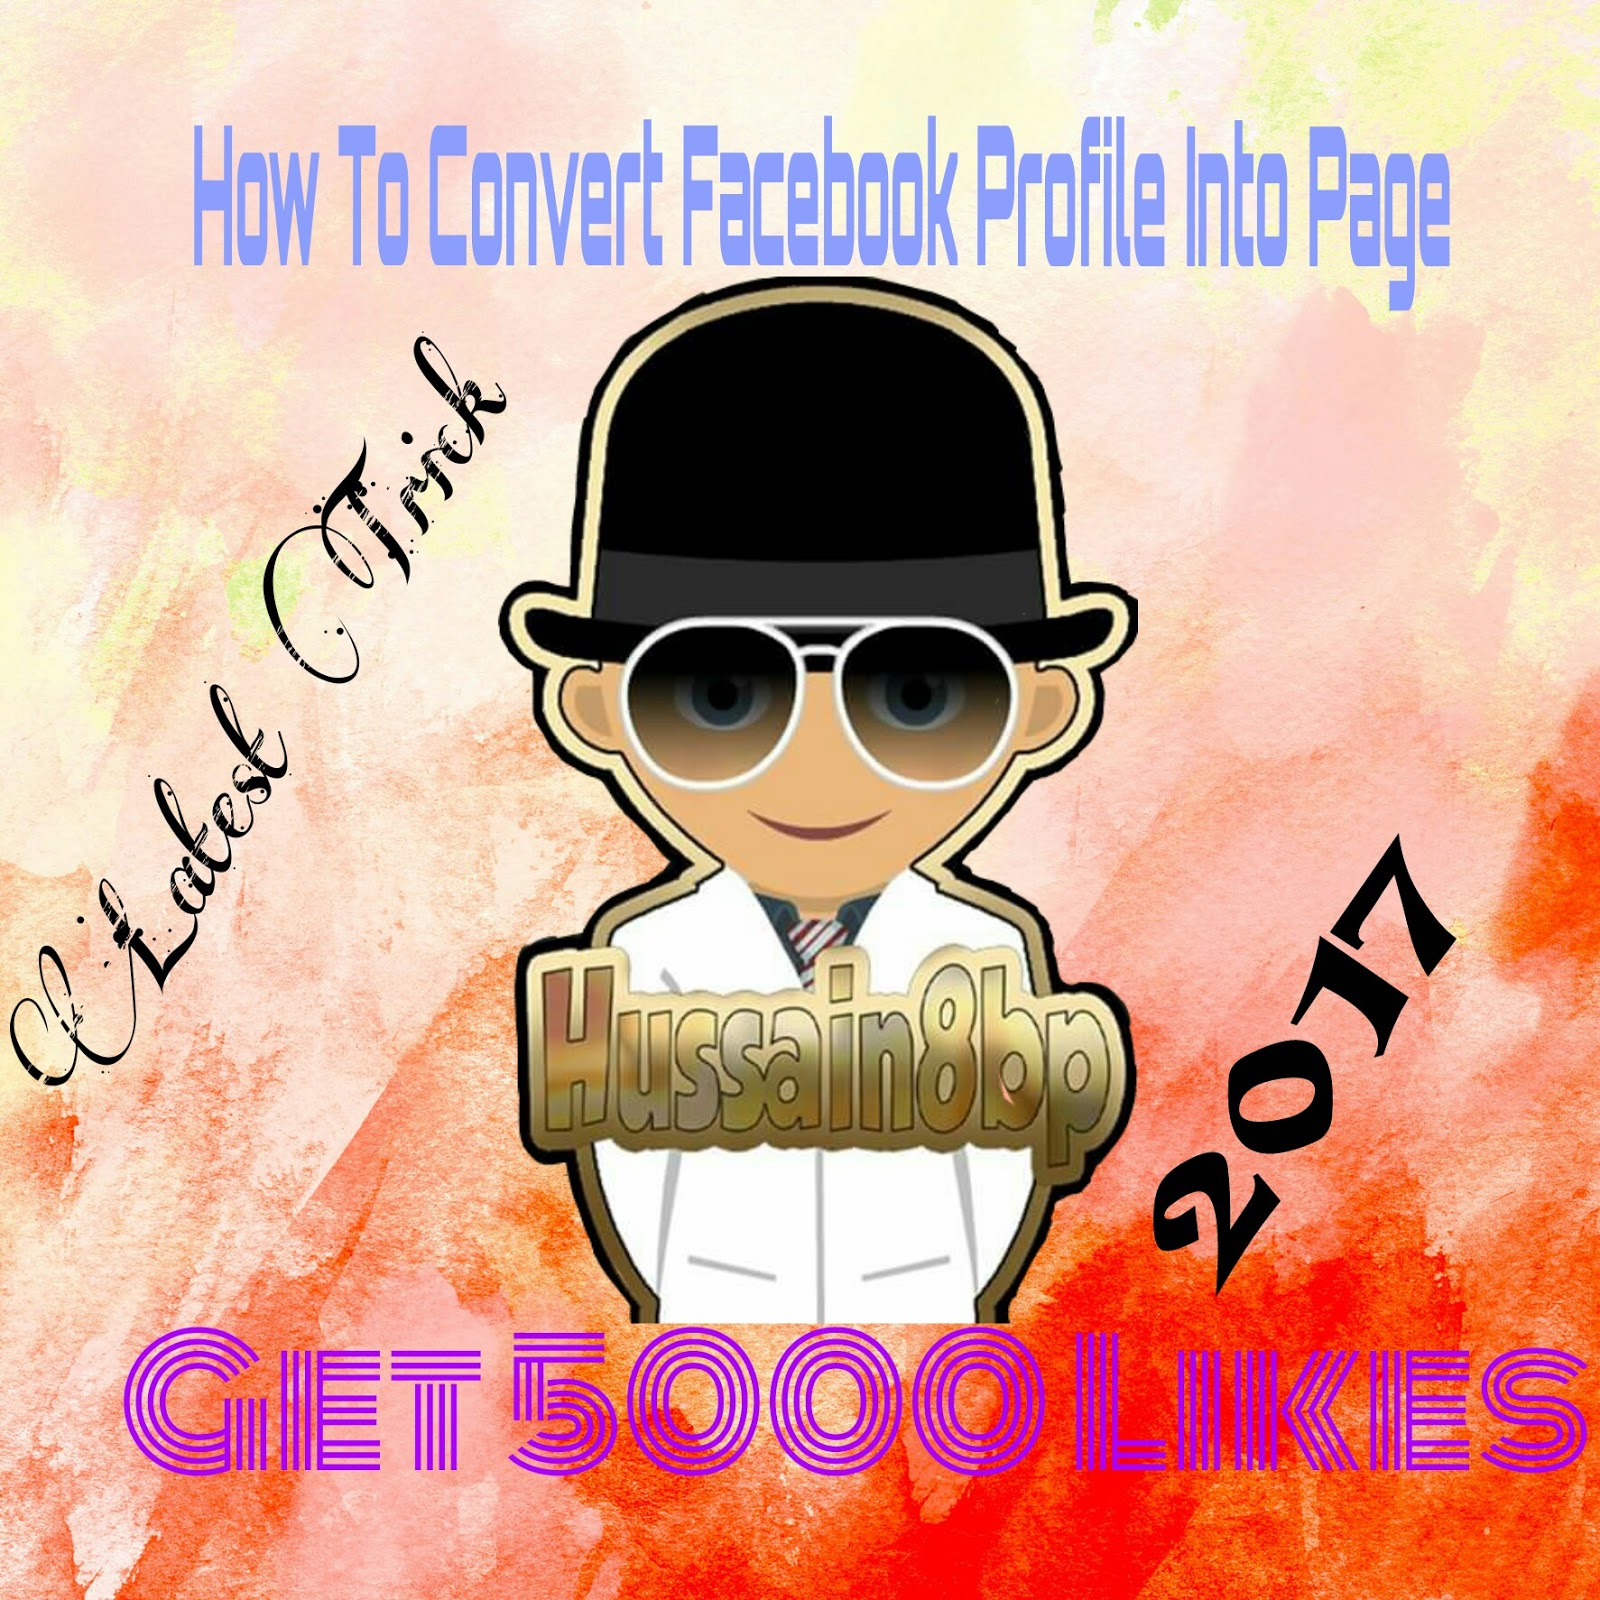 Get profile picture likes